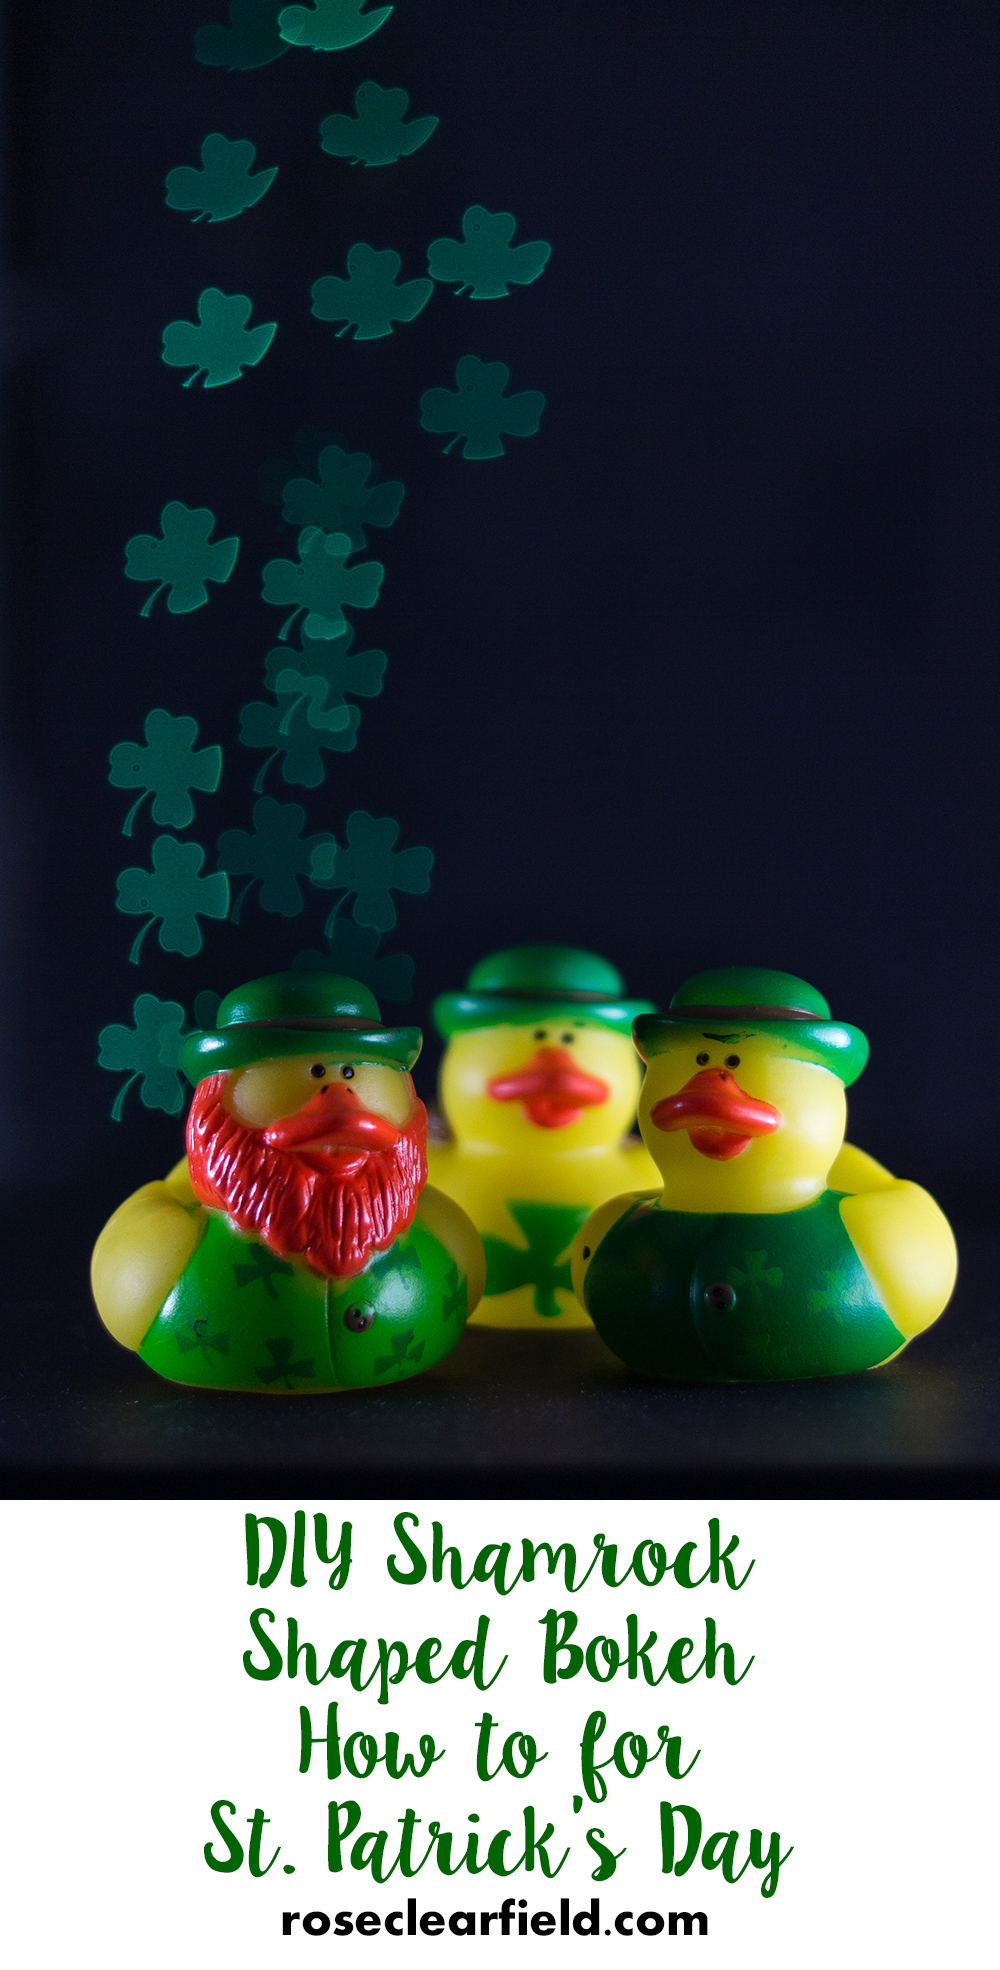 DIY Shamrock Shaped Bokeh How to for St. Patrick's Day | https://www.roseclearfield.com